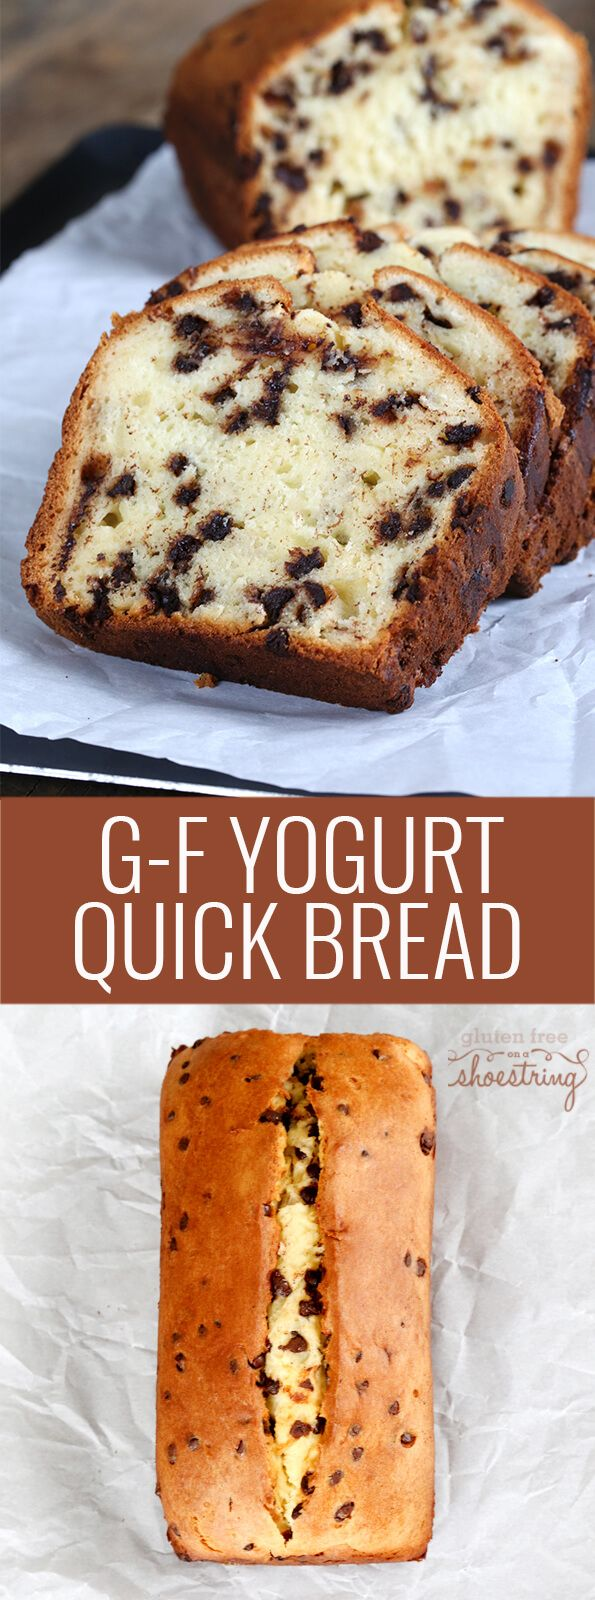 This tested recipe for gluten free quick bread is made with yogurt and chocolate chips. Super simple recipe, moist and tender results! http://glutenfreeonashoestring.com/gluten-free-quick-bread-chocolate-chip-yogurt/